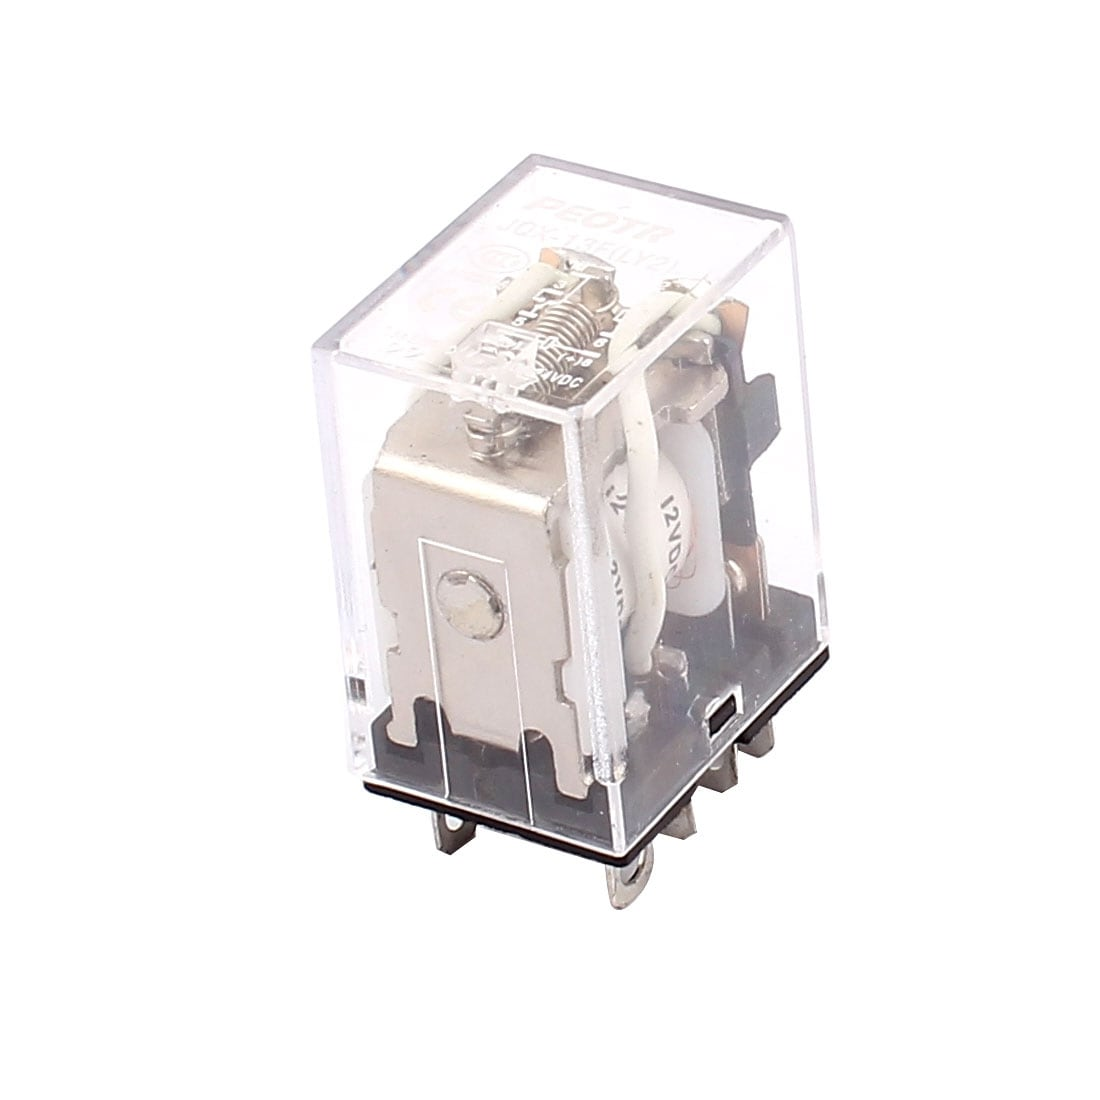 Shop Jqx 13f Dc 12v Coil 8 Pin Dpdt Power Relay Ac 220v 75a 24v Spdt 5a 10a Free Shipping On Orders Over 45 18252564